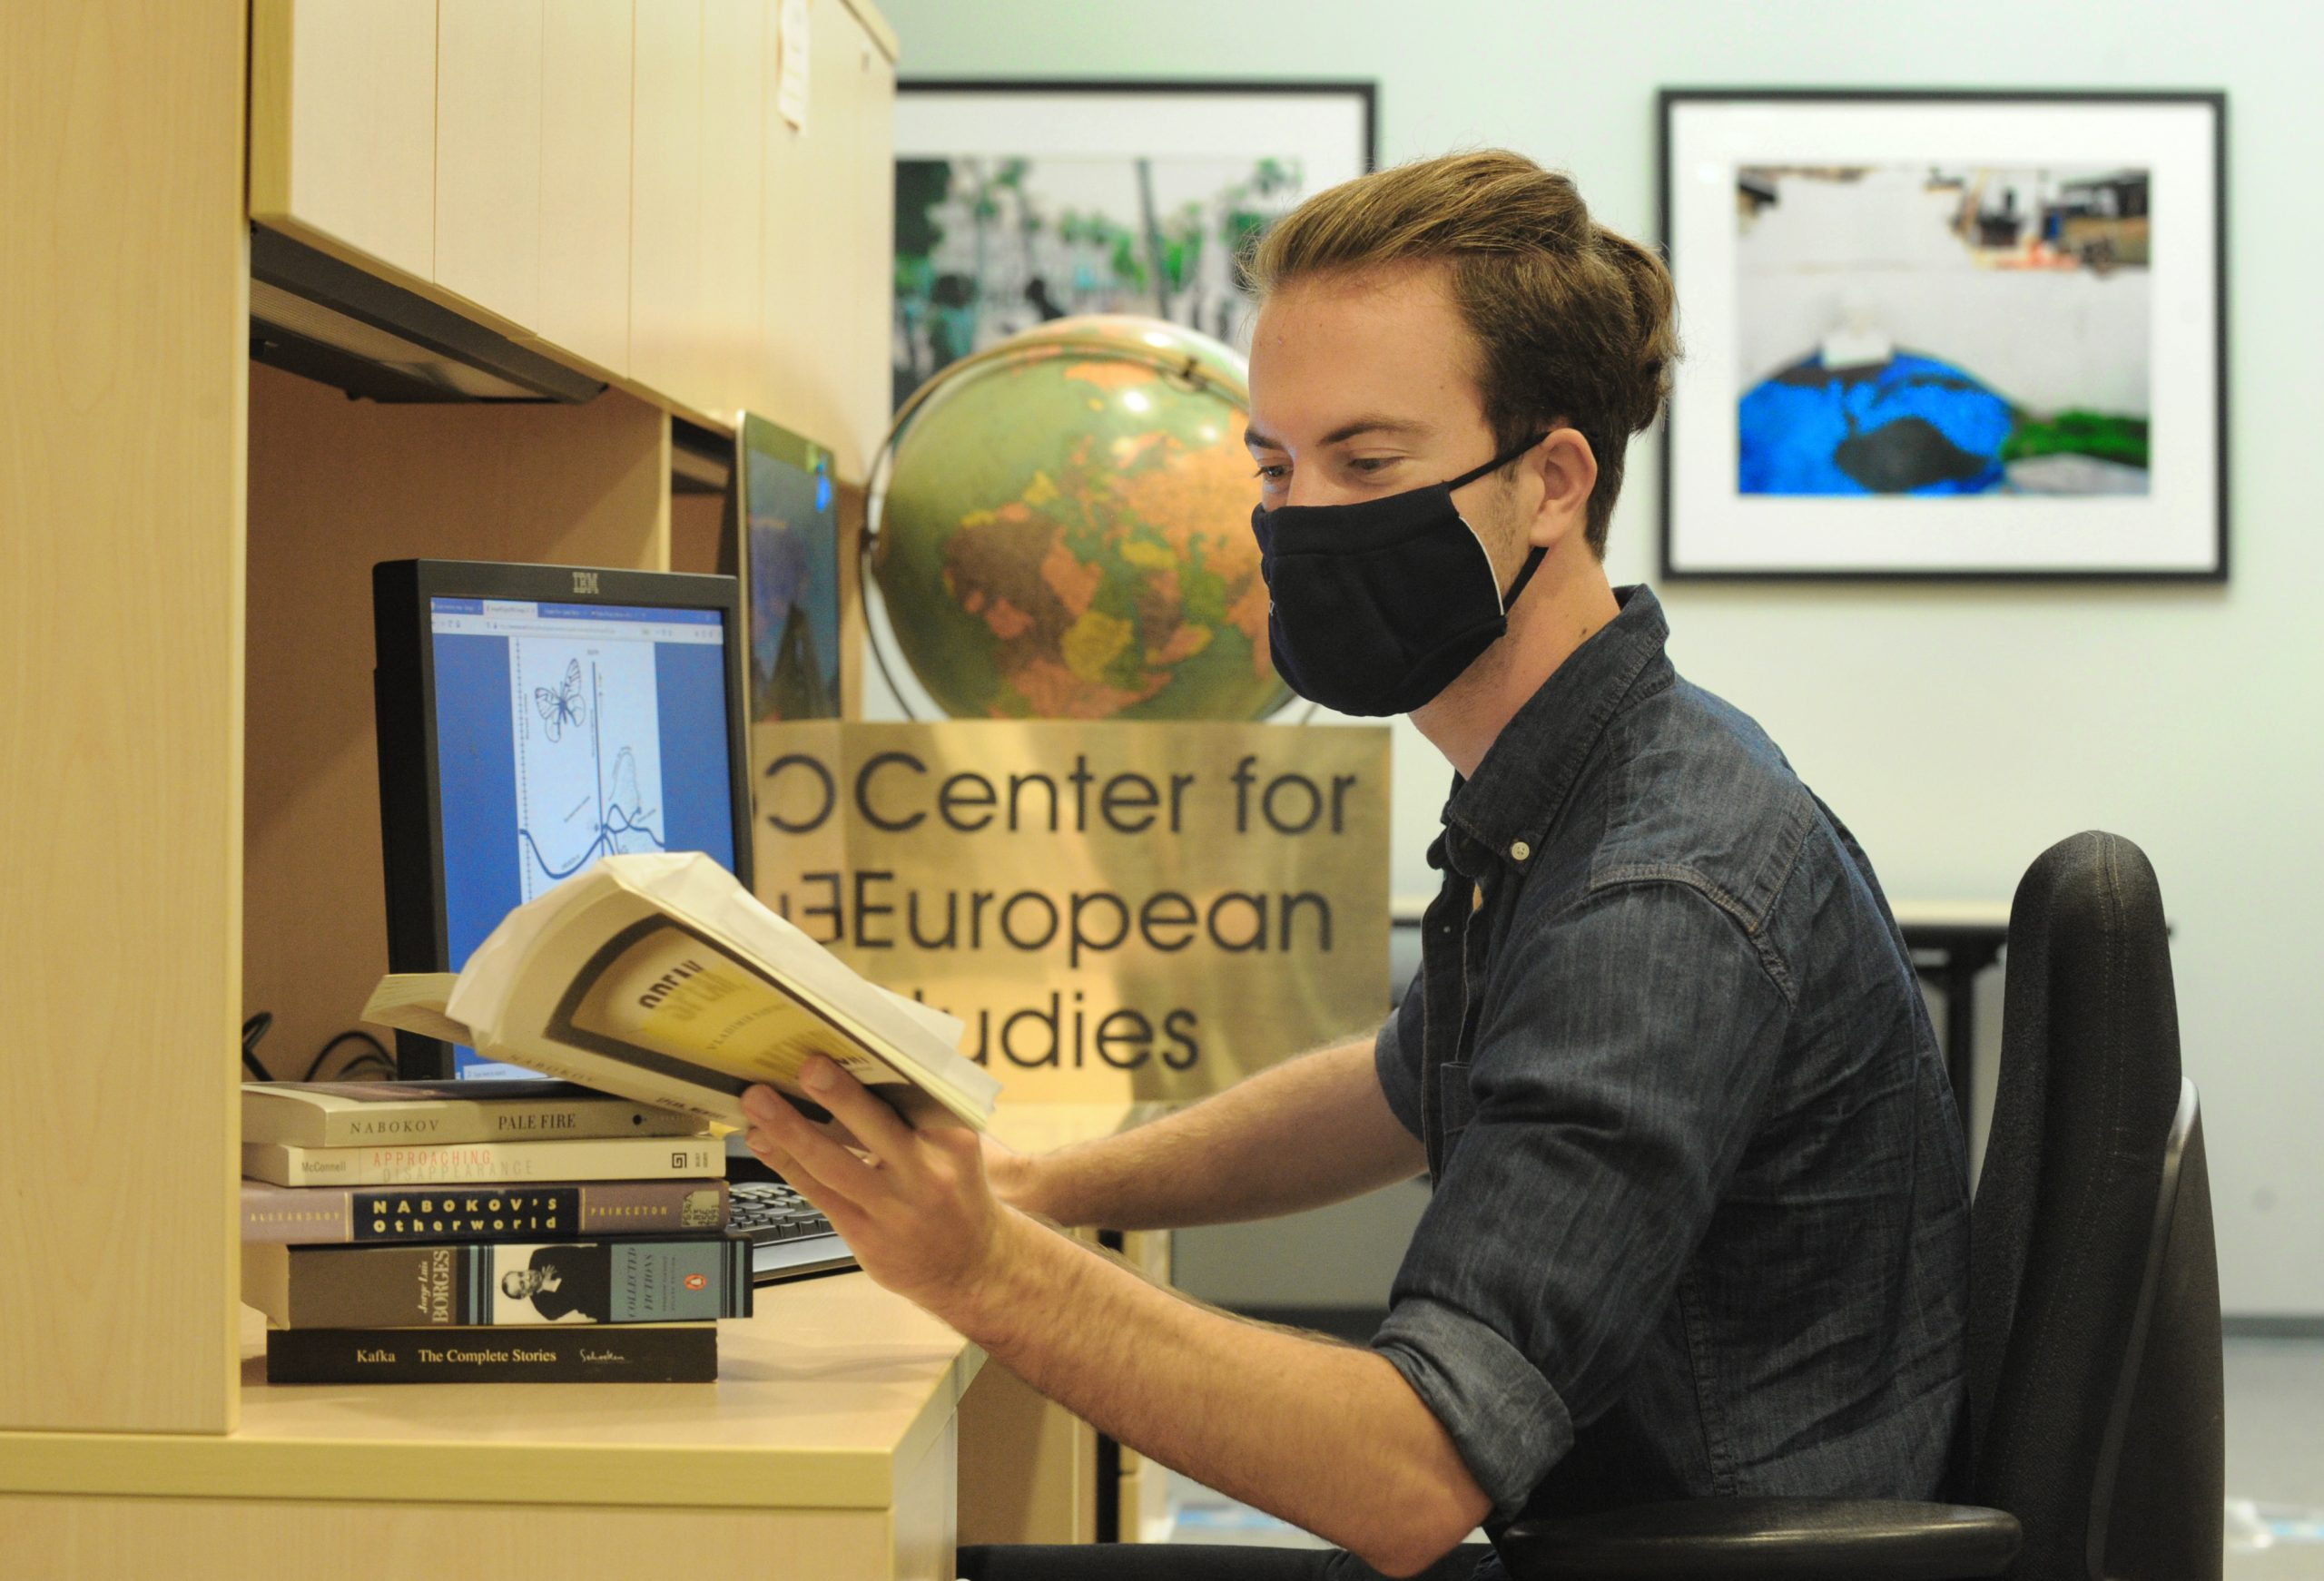 Student, in a mask, reads a book while at a computer.